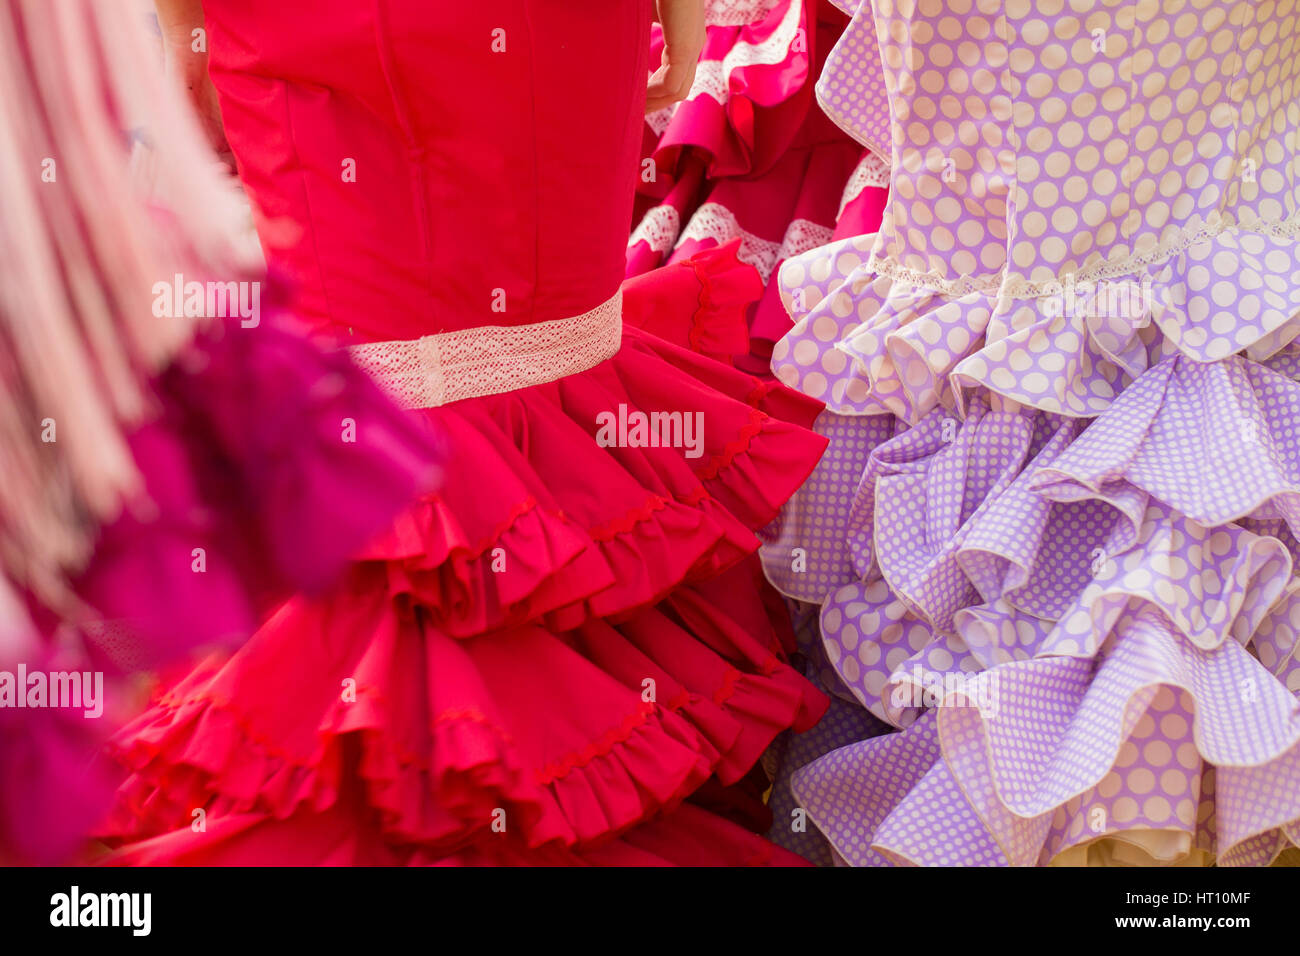 red woman flamenco clothes texture - Stock Image